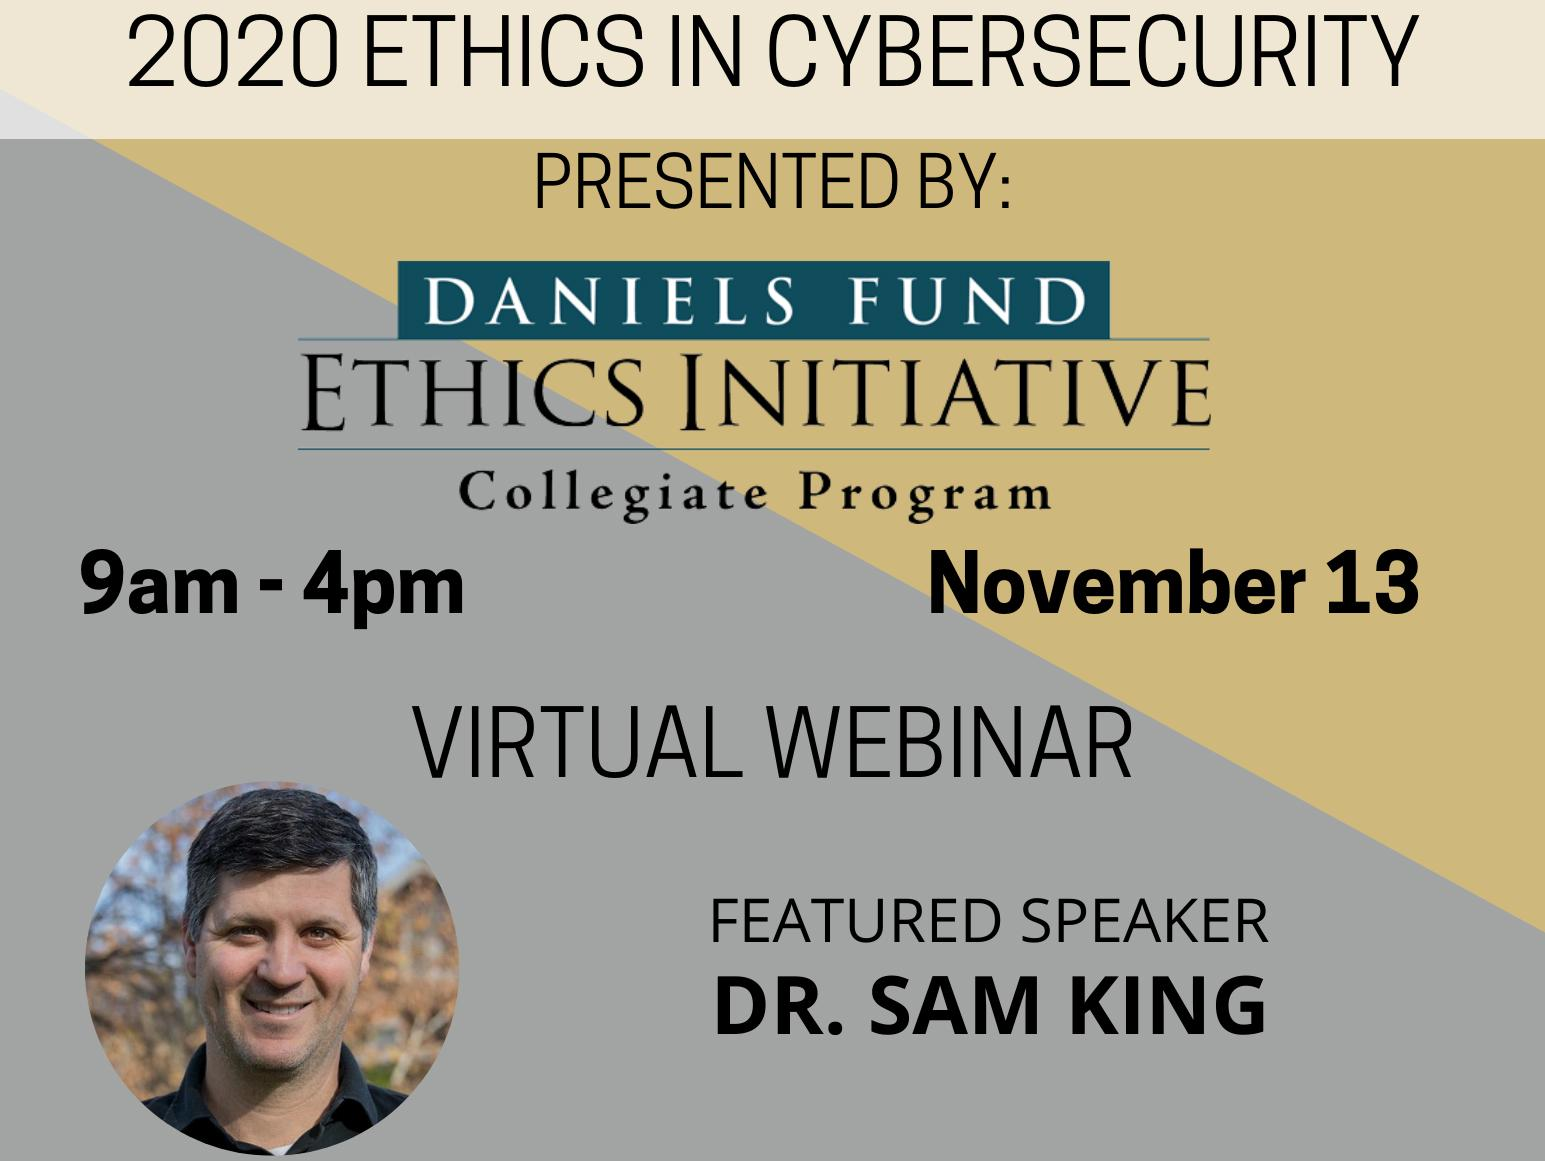 Promotional graphic for the 2020 Ethics in Cybersecurity virtual event